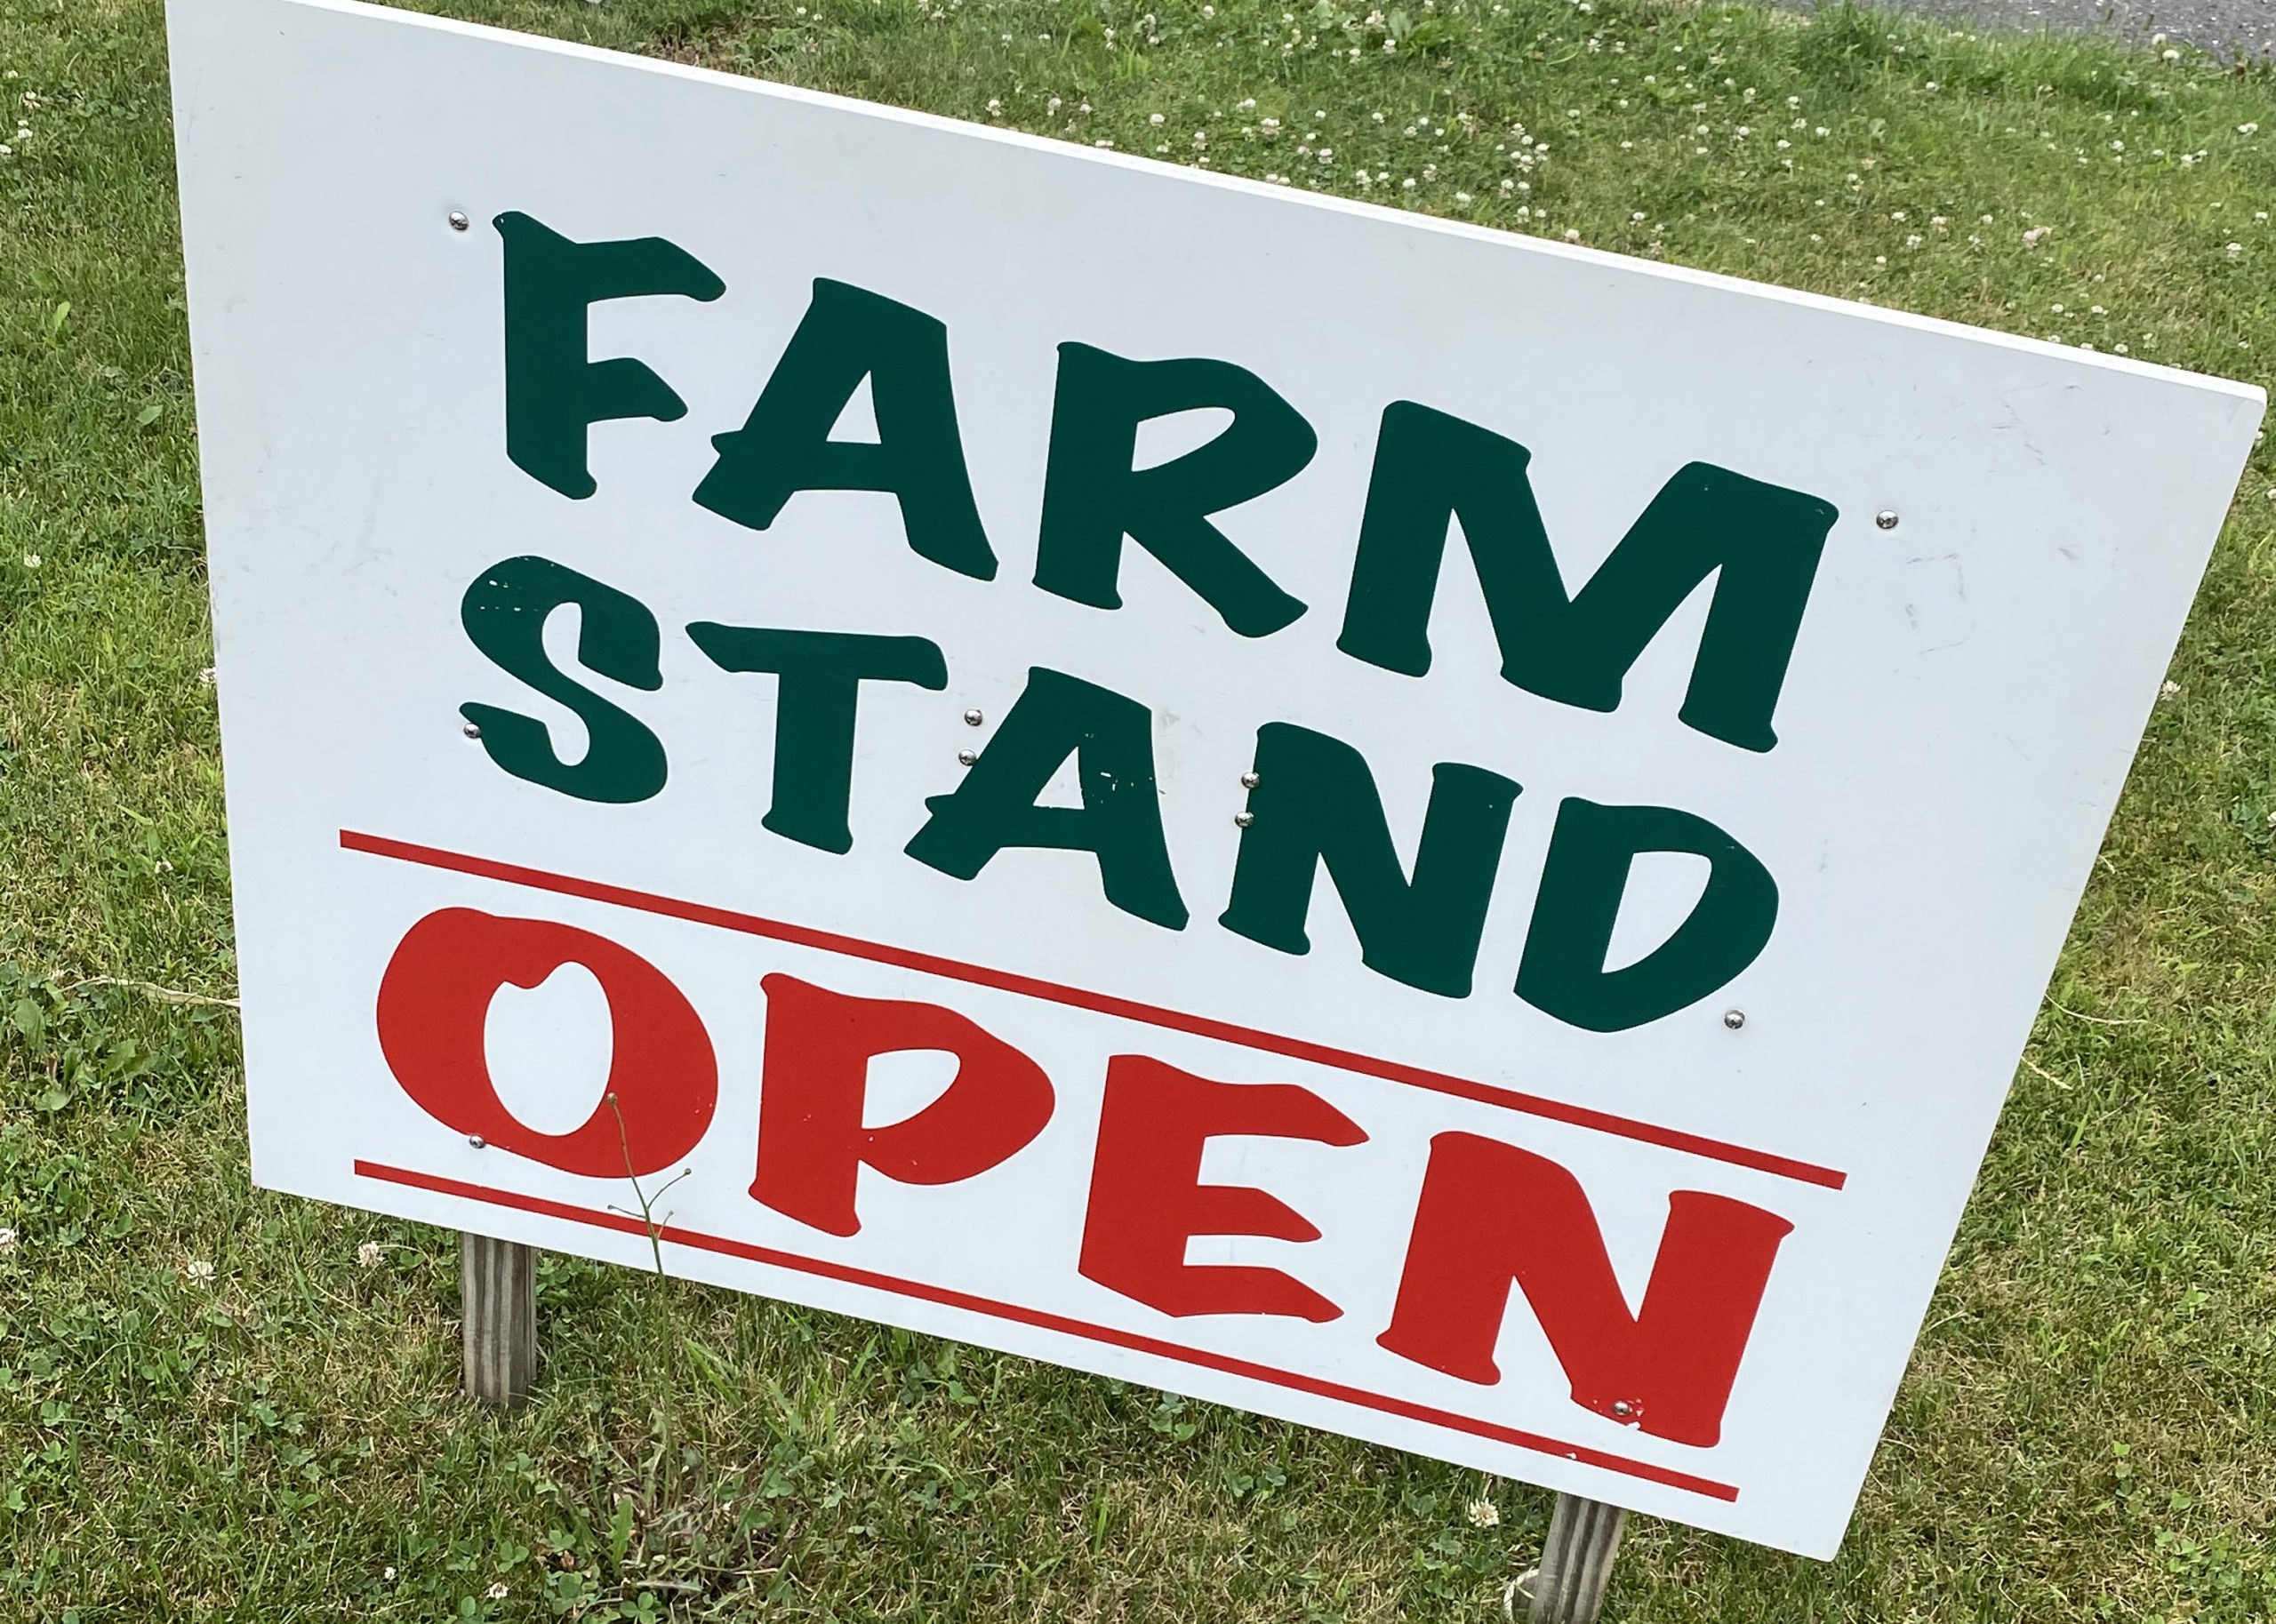 Farmstands are open.  STEVEN STOLMAN